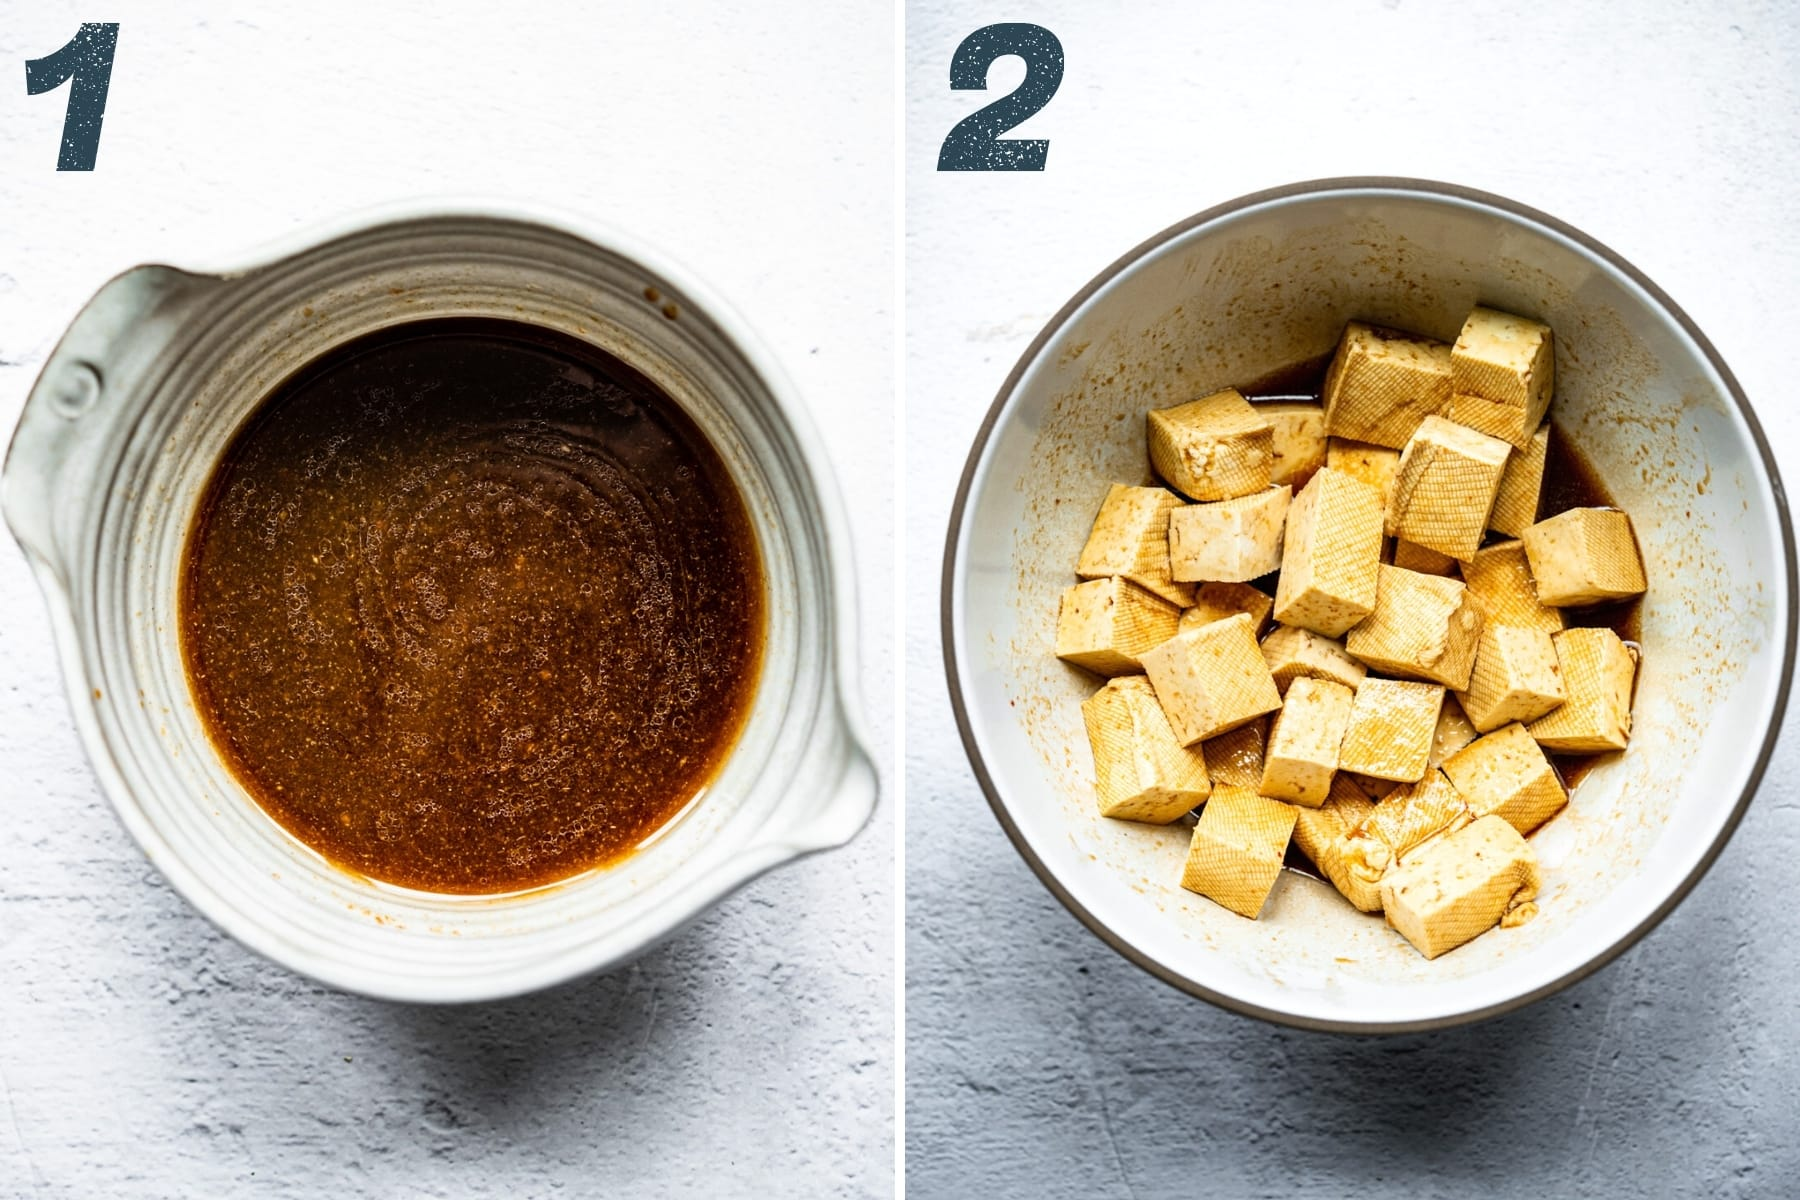 on the left: marinade for tofu in a bowl. on the right: cubed tofu tossed in marinade in a bowl.